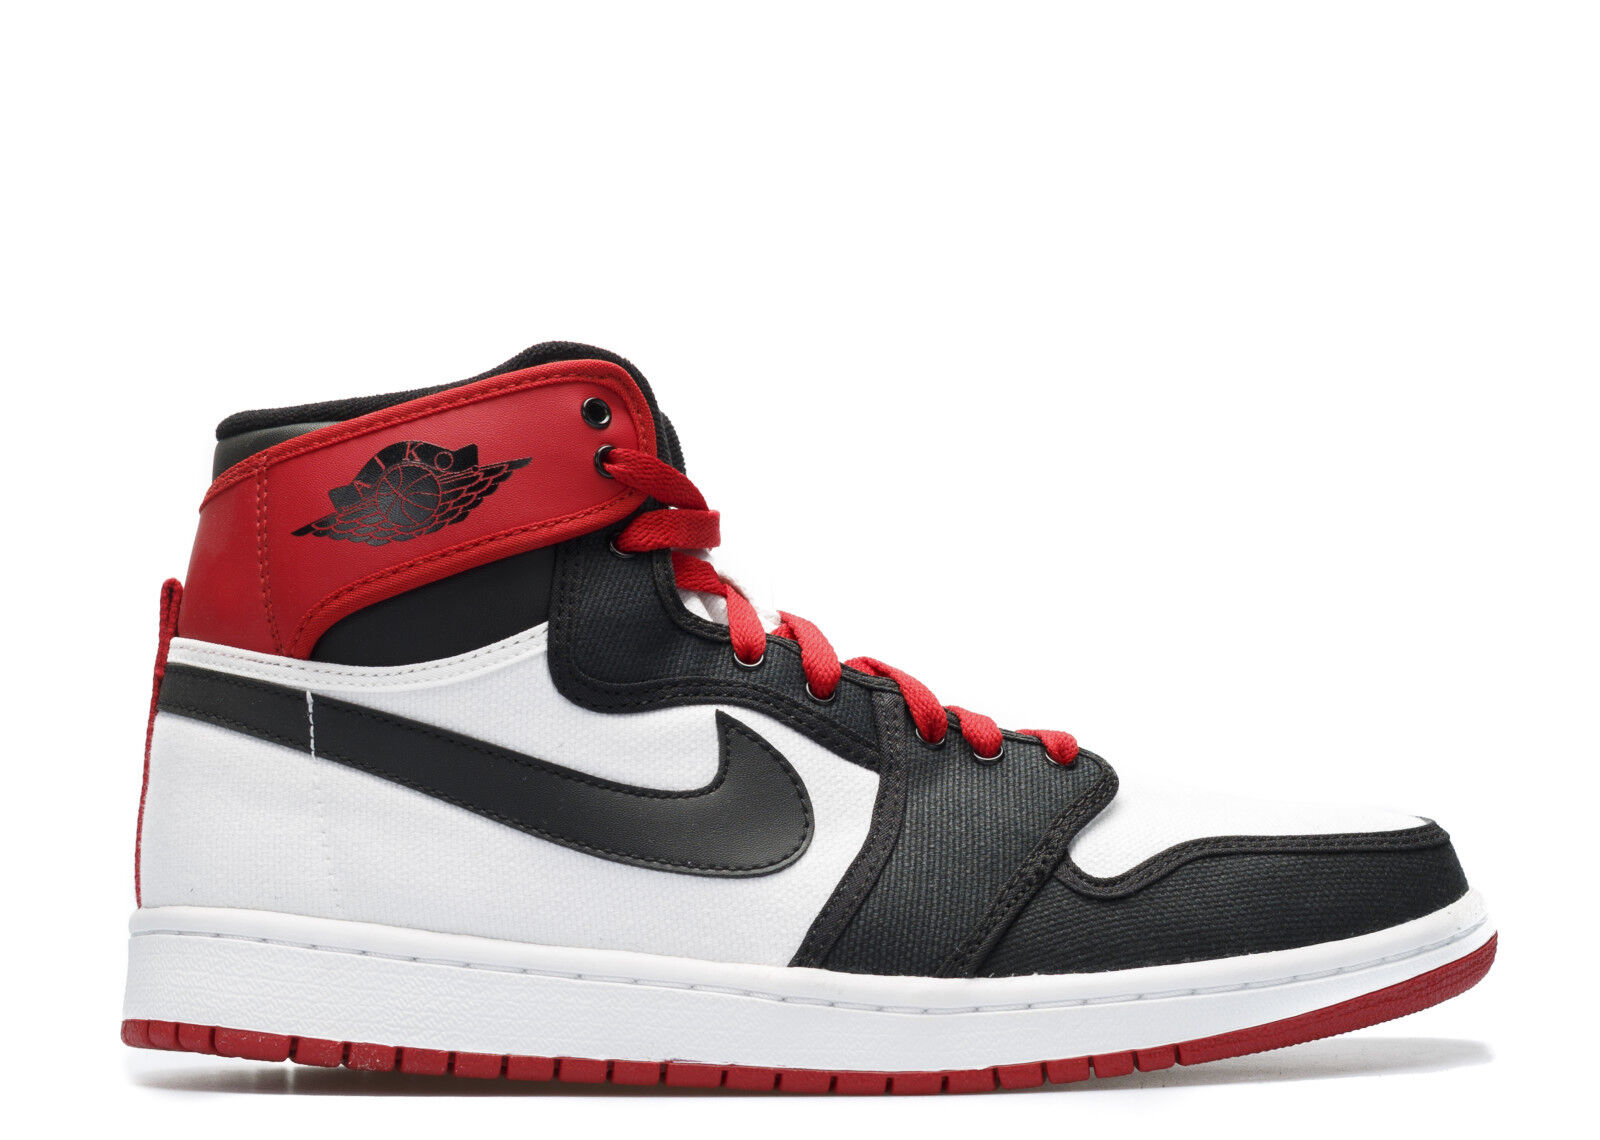 Nike Air Jordan 1 KO AJKO High OG Black Toe White Red size 11.5. 402297-110.